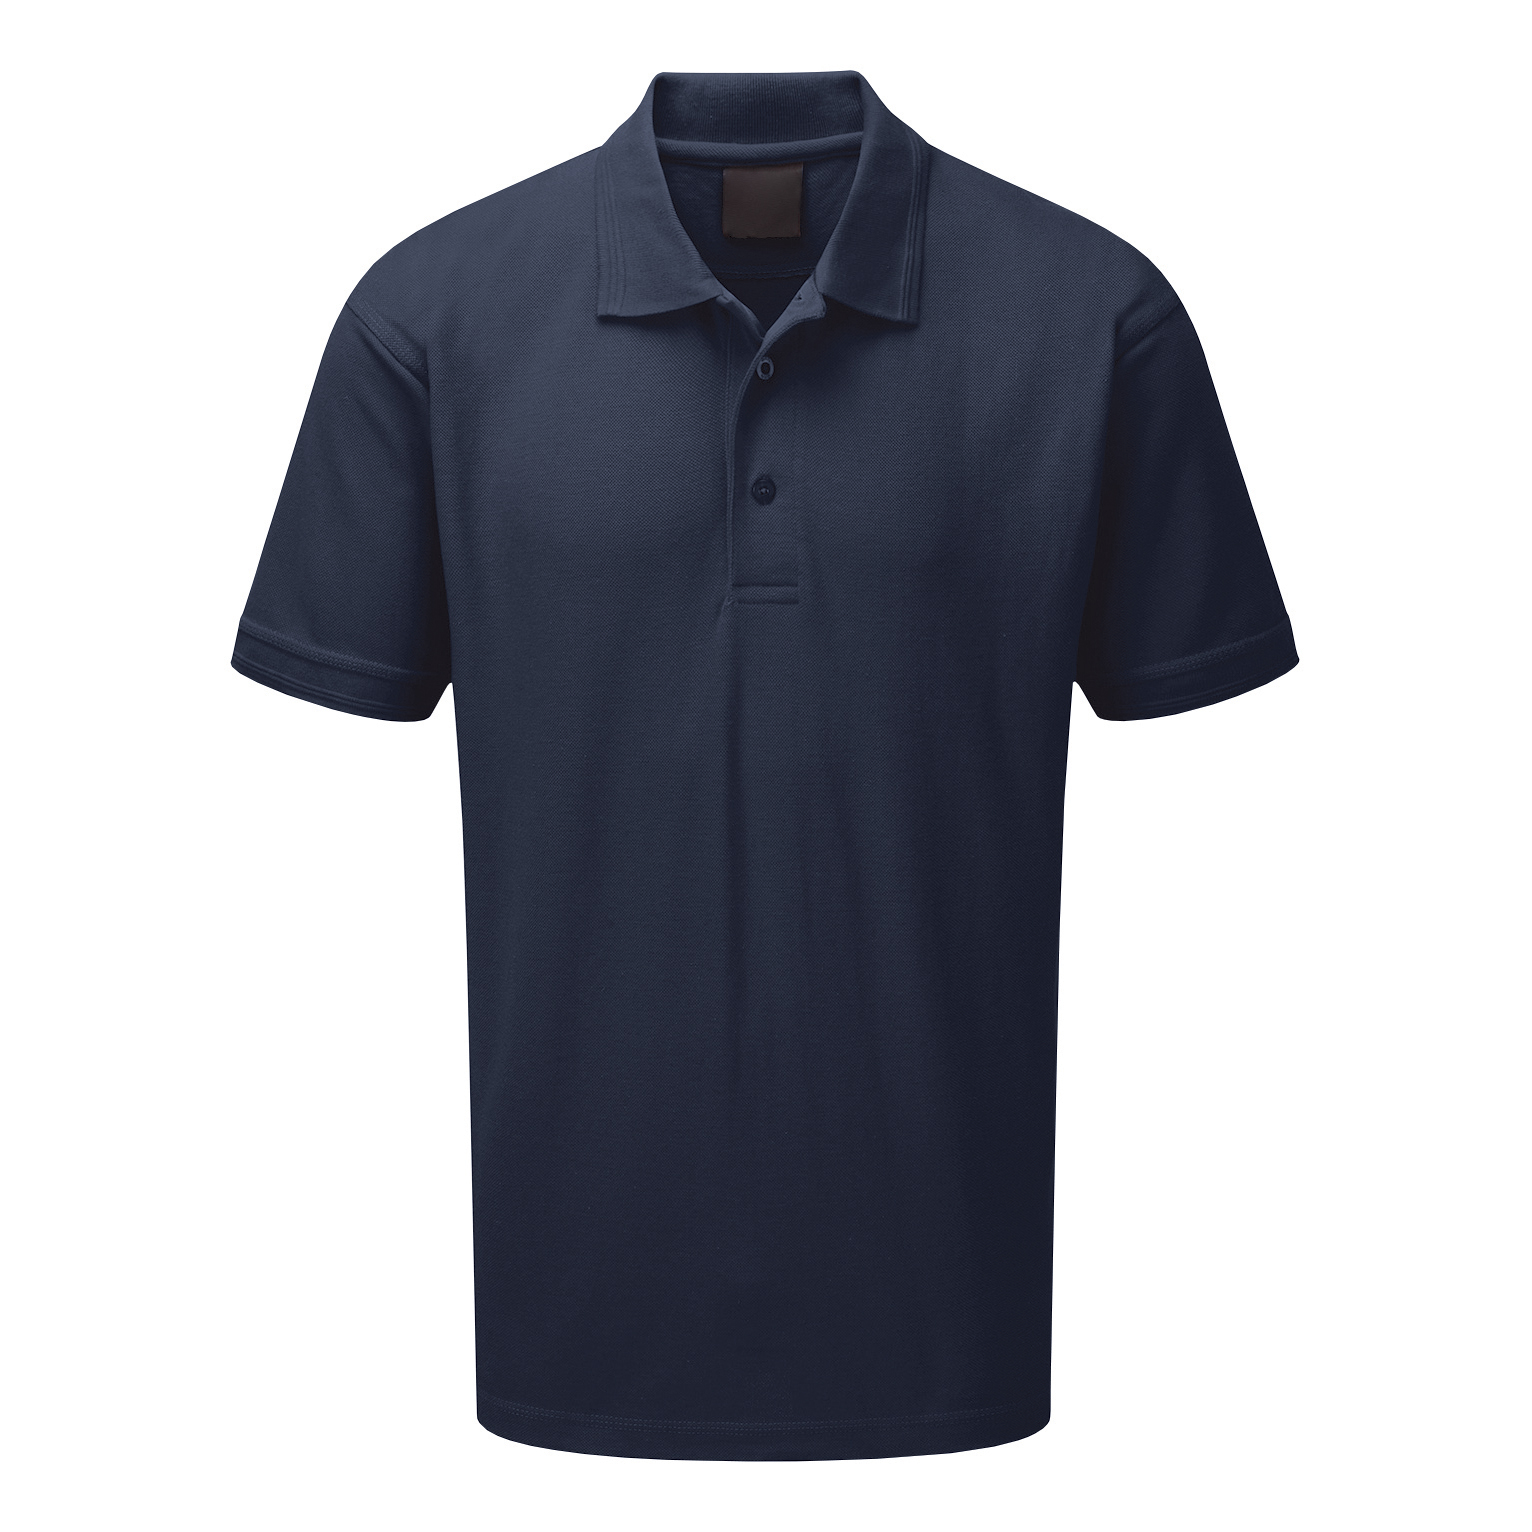 Click Workwear Polo Shirt Polycotton 200gsm 3XL Navy Blue Ref CLPKSNXXXL *1-3 Days Lead Time*